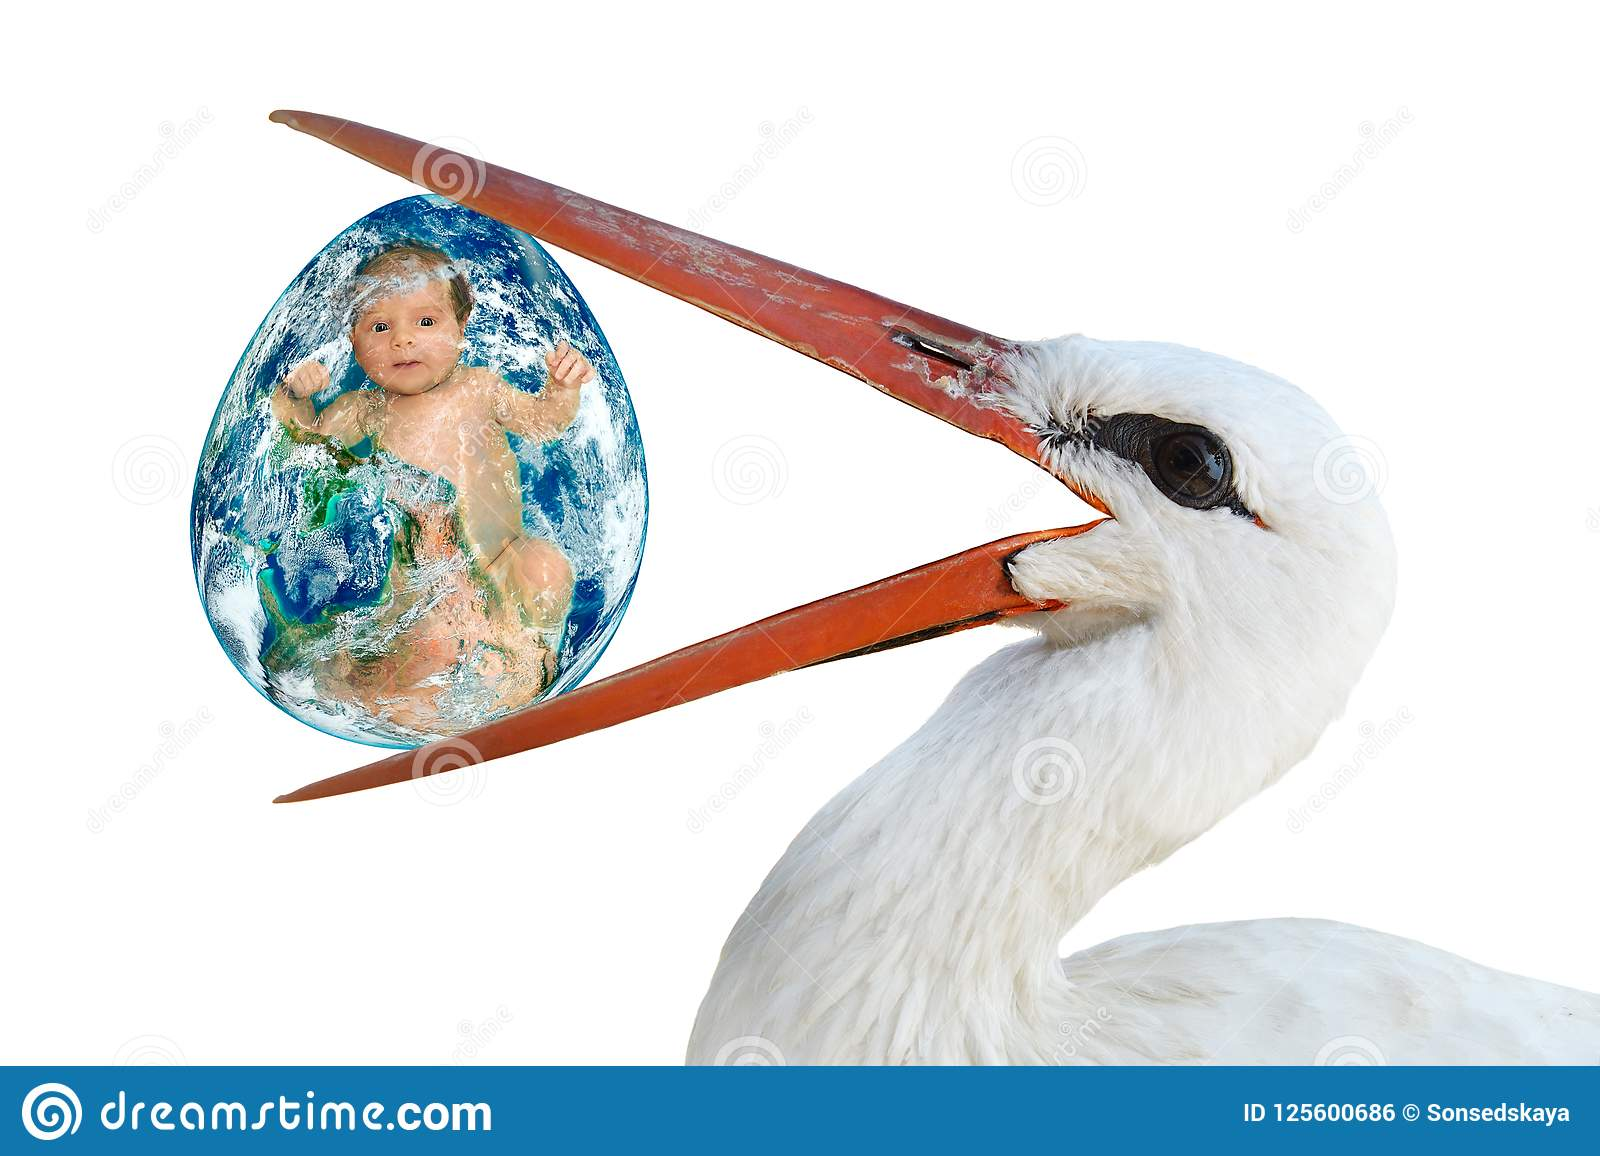 Stork holding in its beak an egg with a baby